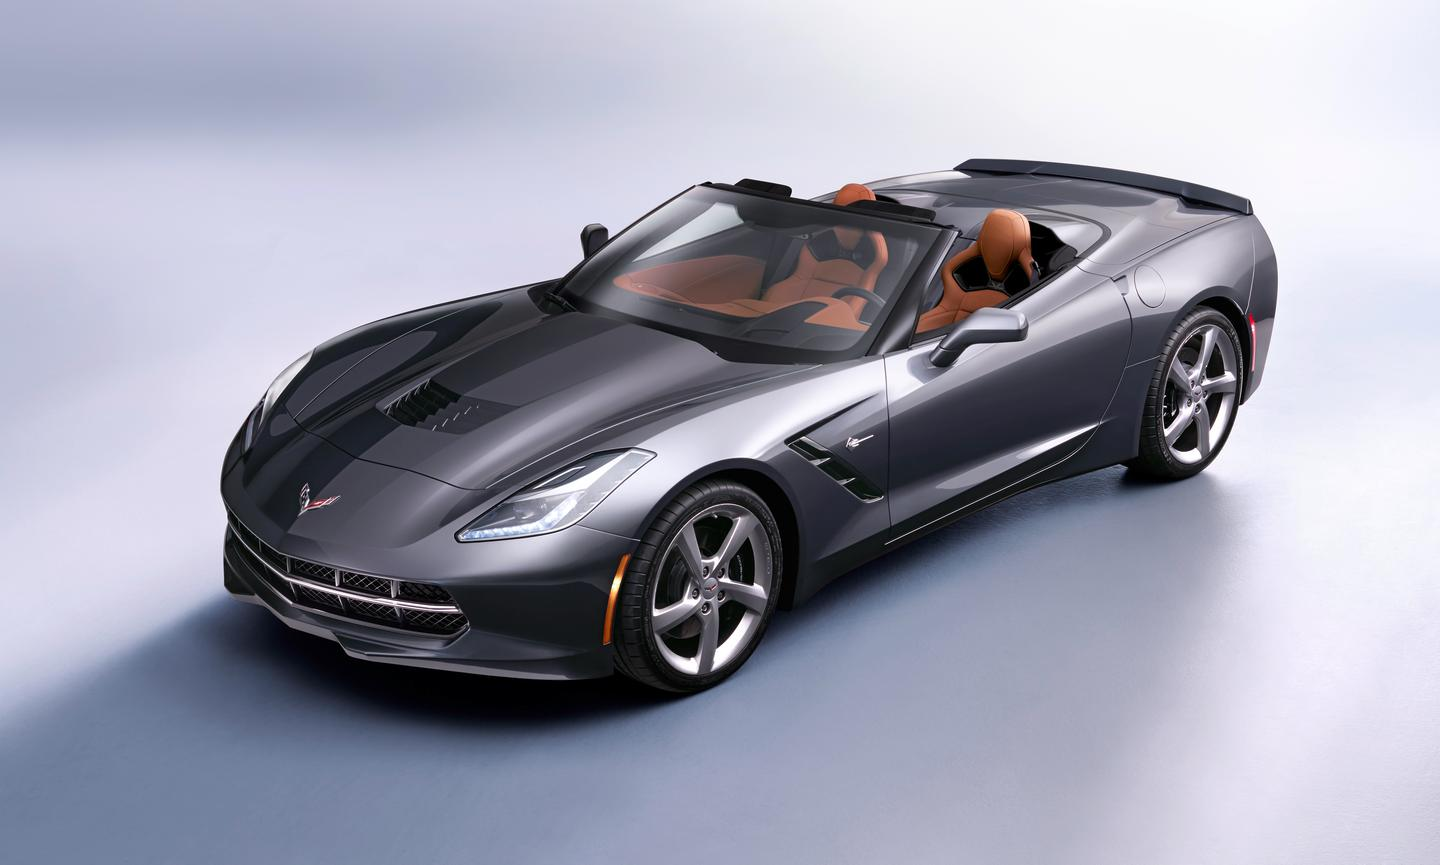 The Chevrolet 2014 Corvette Stingray convertible